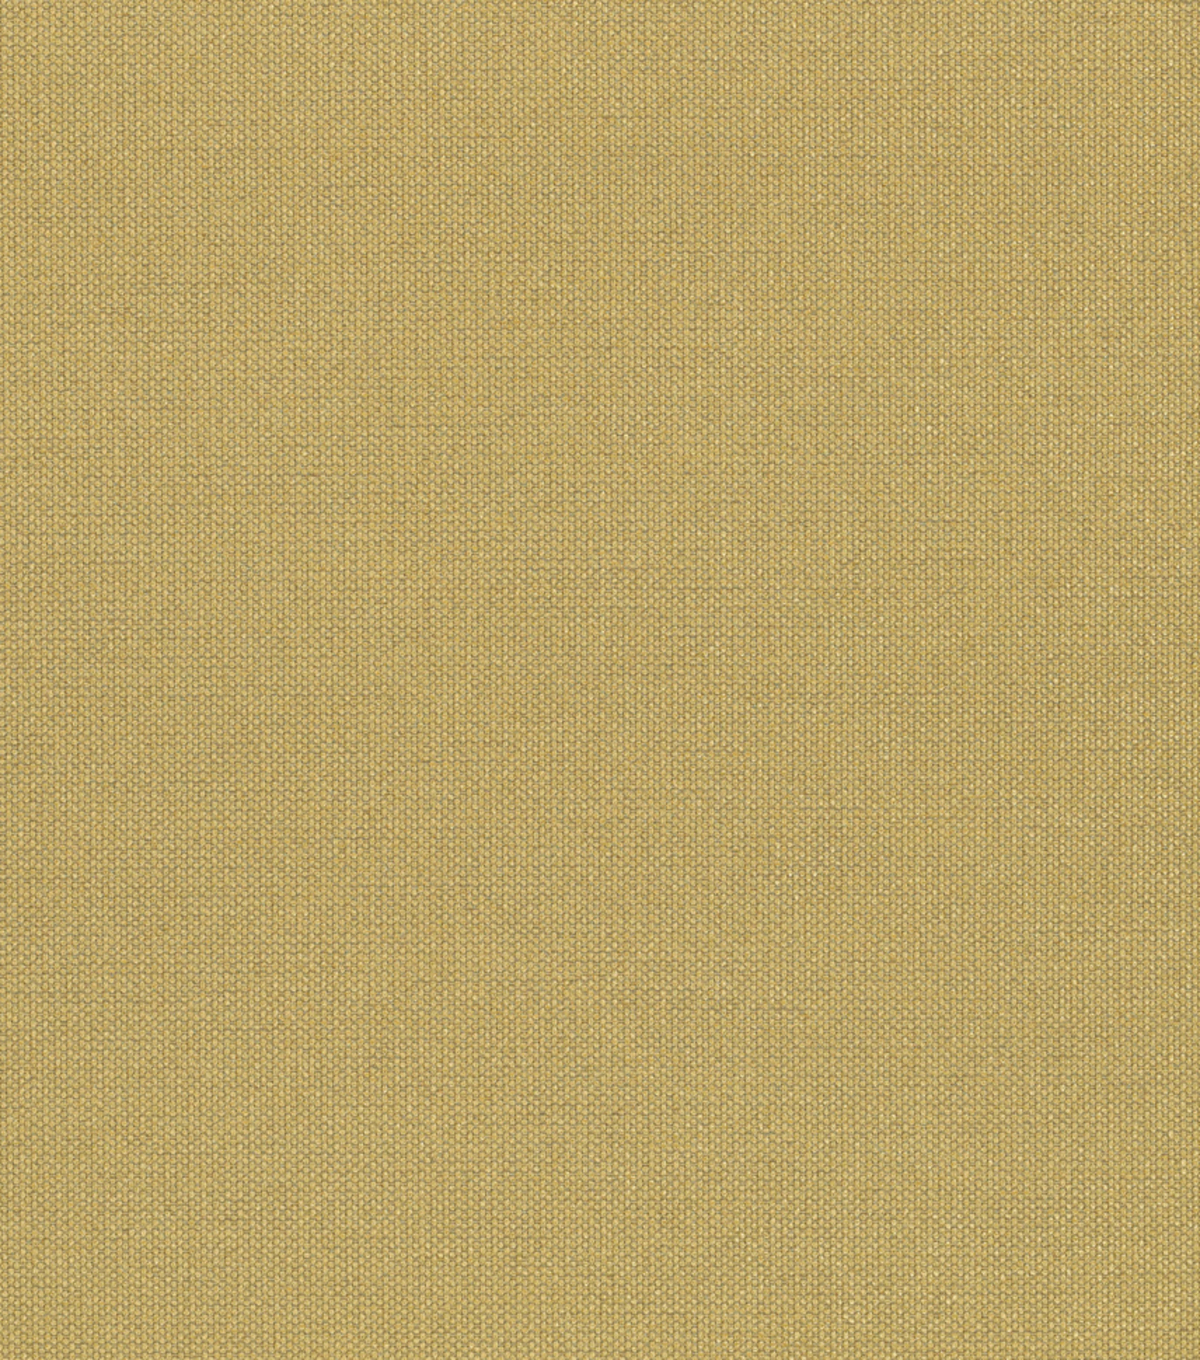 Home Decor 8\u0022x8\u0022 Fabric Swatch-Motown Apple